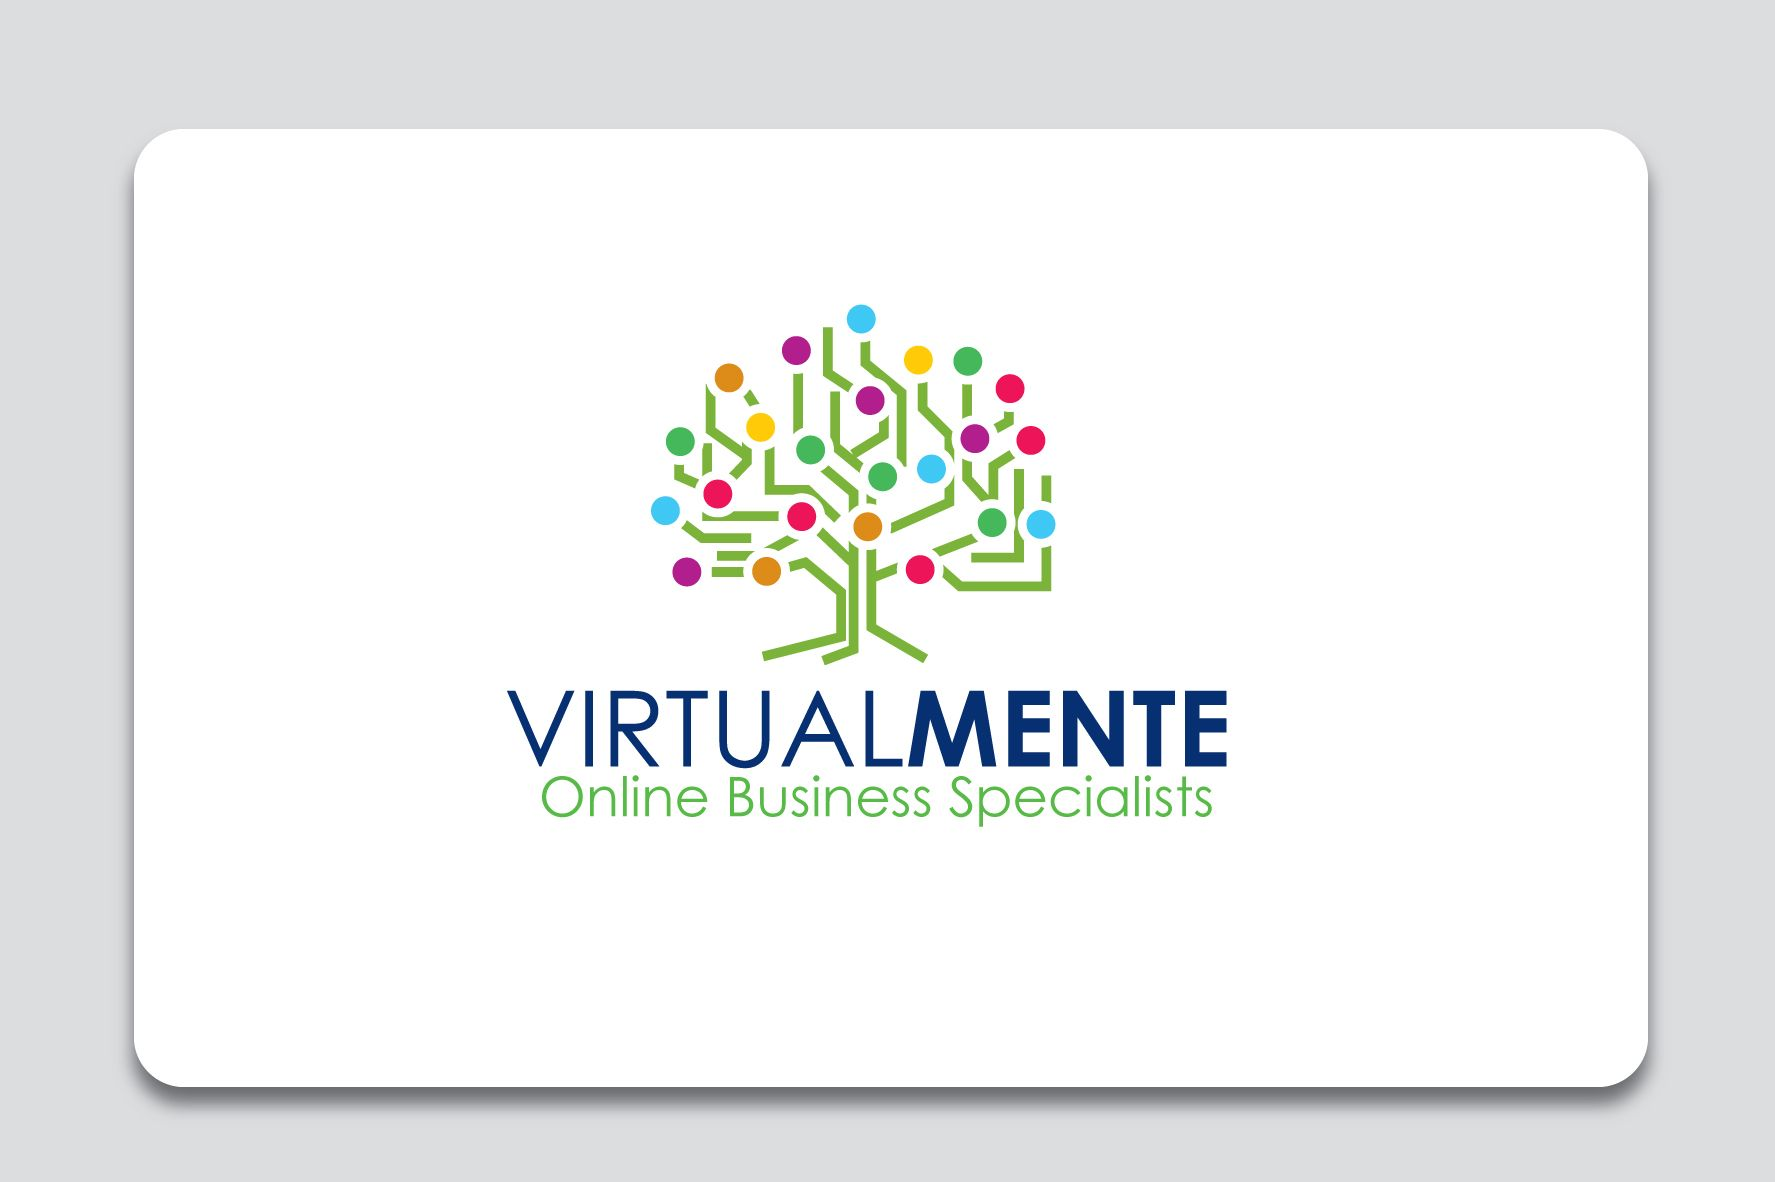 logo and branding design for www.virtualandco.net. I'm making a re branding, and the new company name is VirtualMente. This means in Italian and Spanish VirtualMind. Virtual Assistance only to Online Business Services